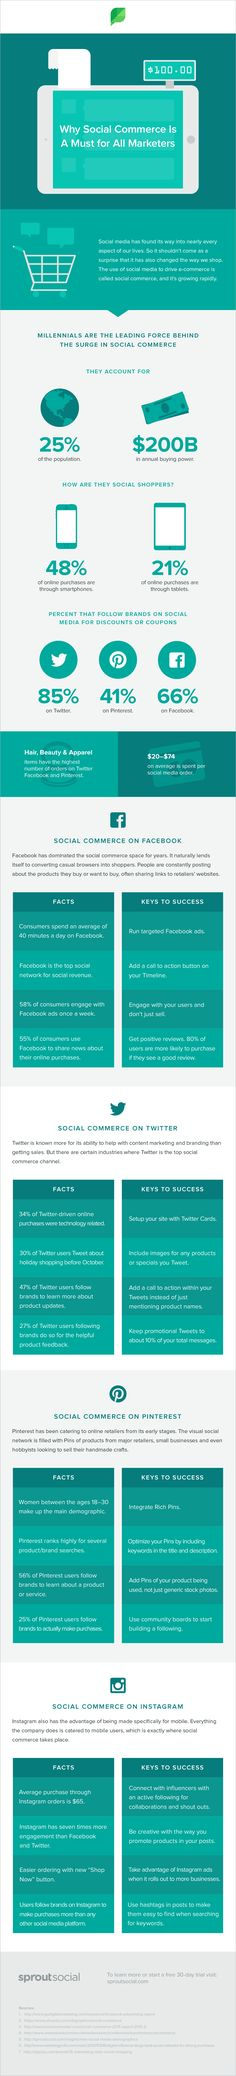 Why Social Commerce Is a Must for All Marketers